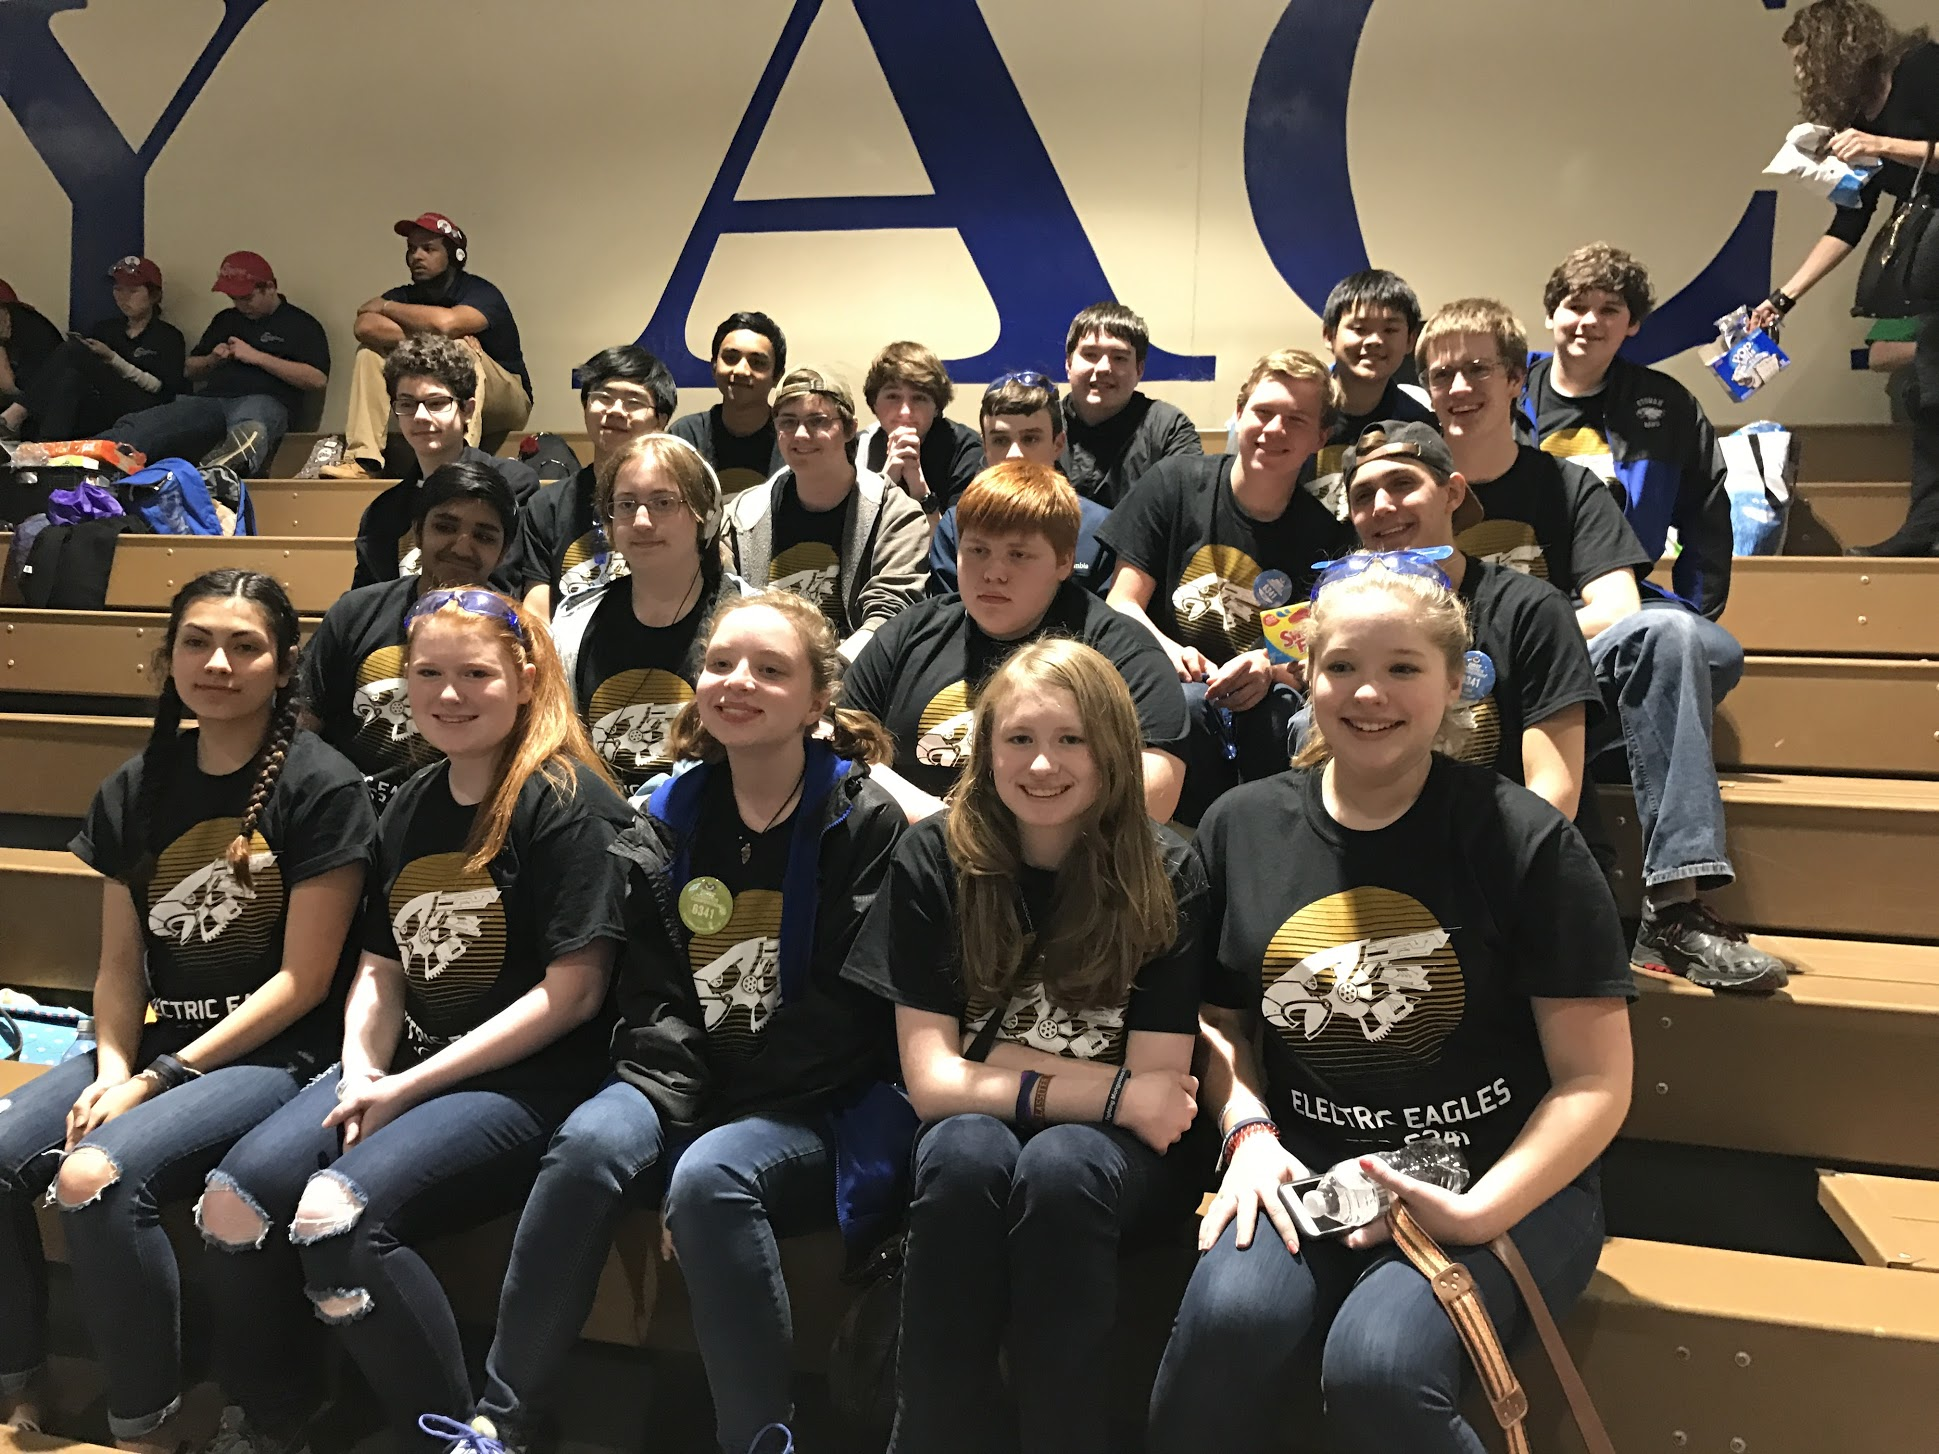 2016 - 17 Etowah Electric Eagles robotics team.